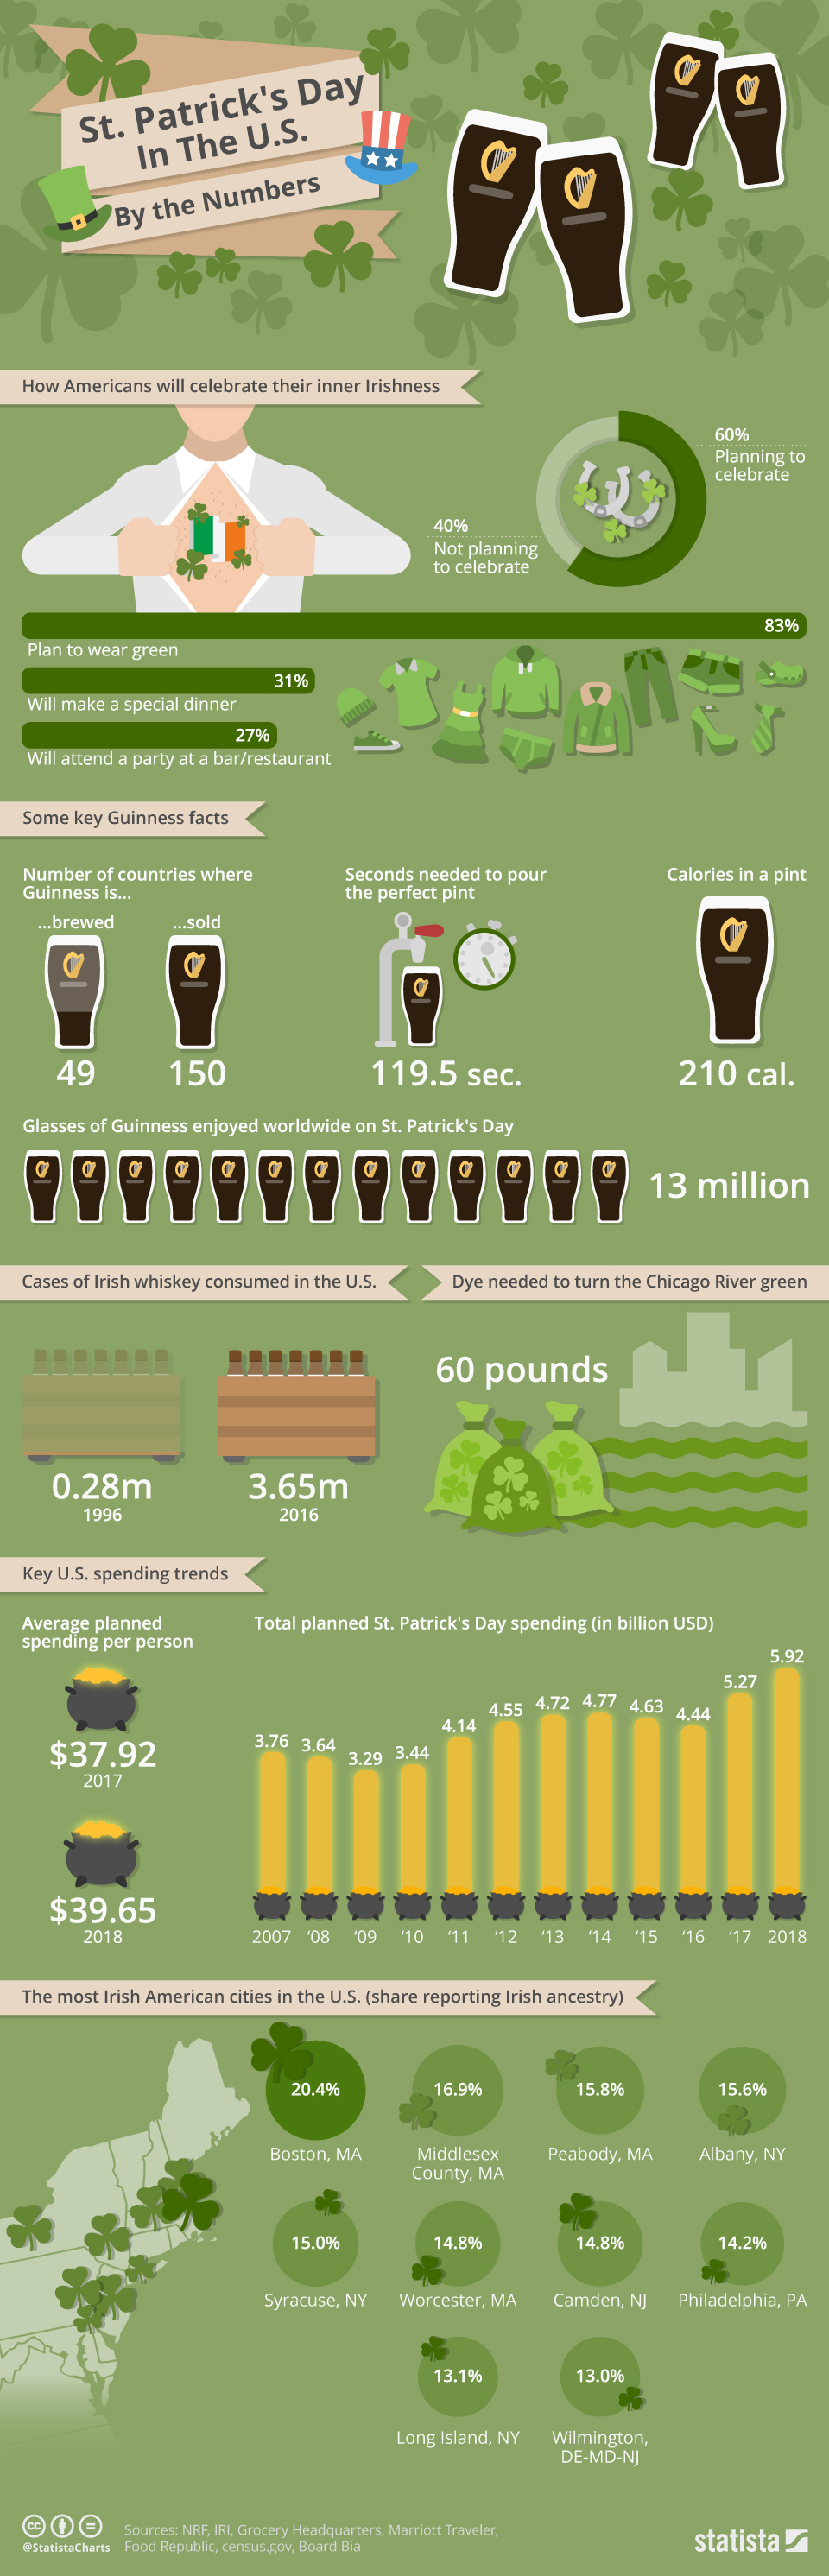 Infographic: St. Patrick's Day In The U.S. By the Numbers  | Statista